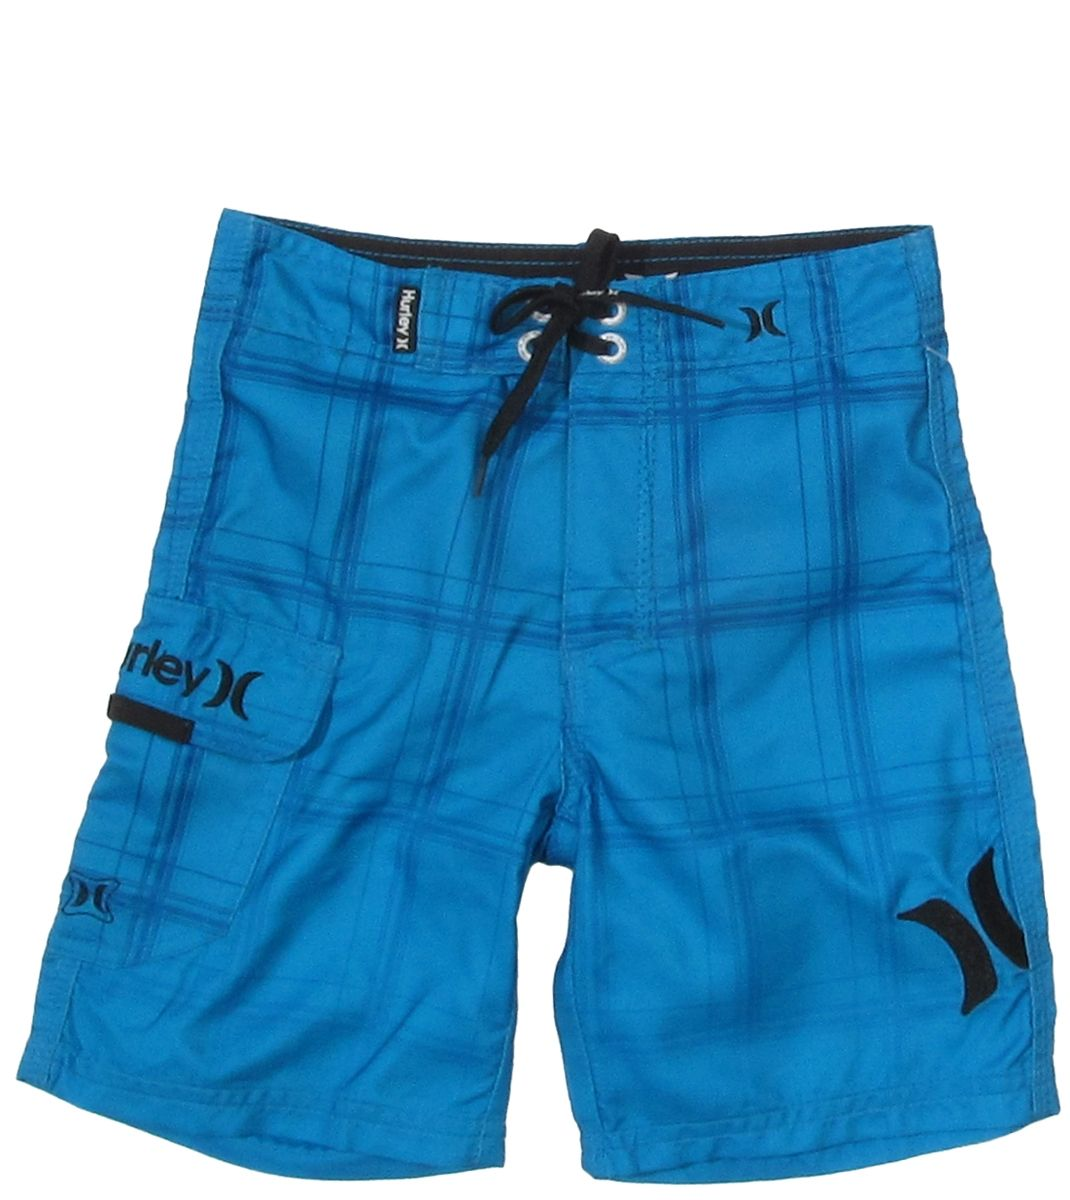 33f197f01b Hurley Baby Boardshorts (12-24M) Little Boy Outfits, Little Boys, Hurley